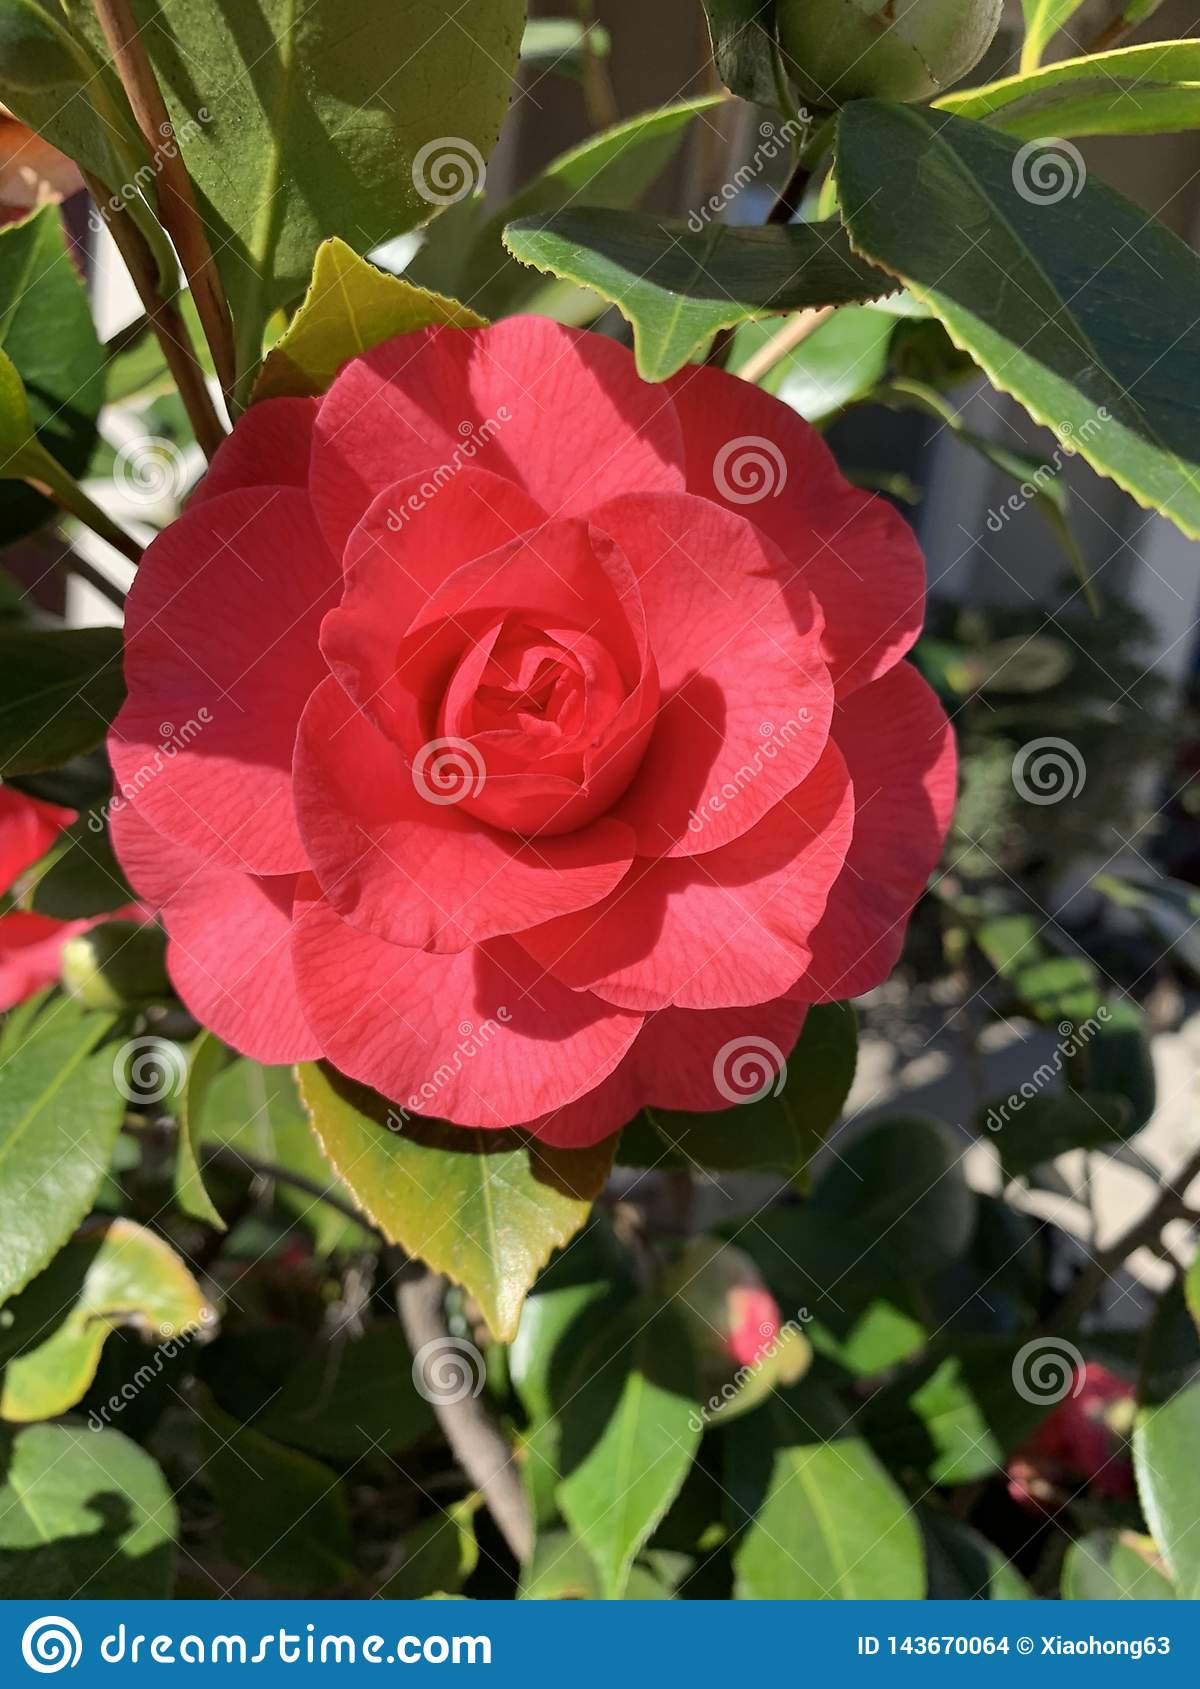 Red Camellia in spring March